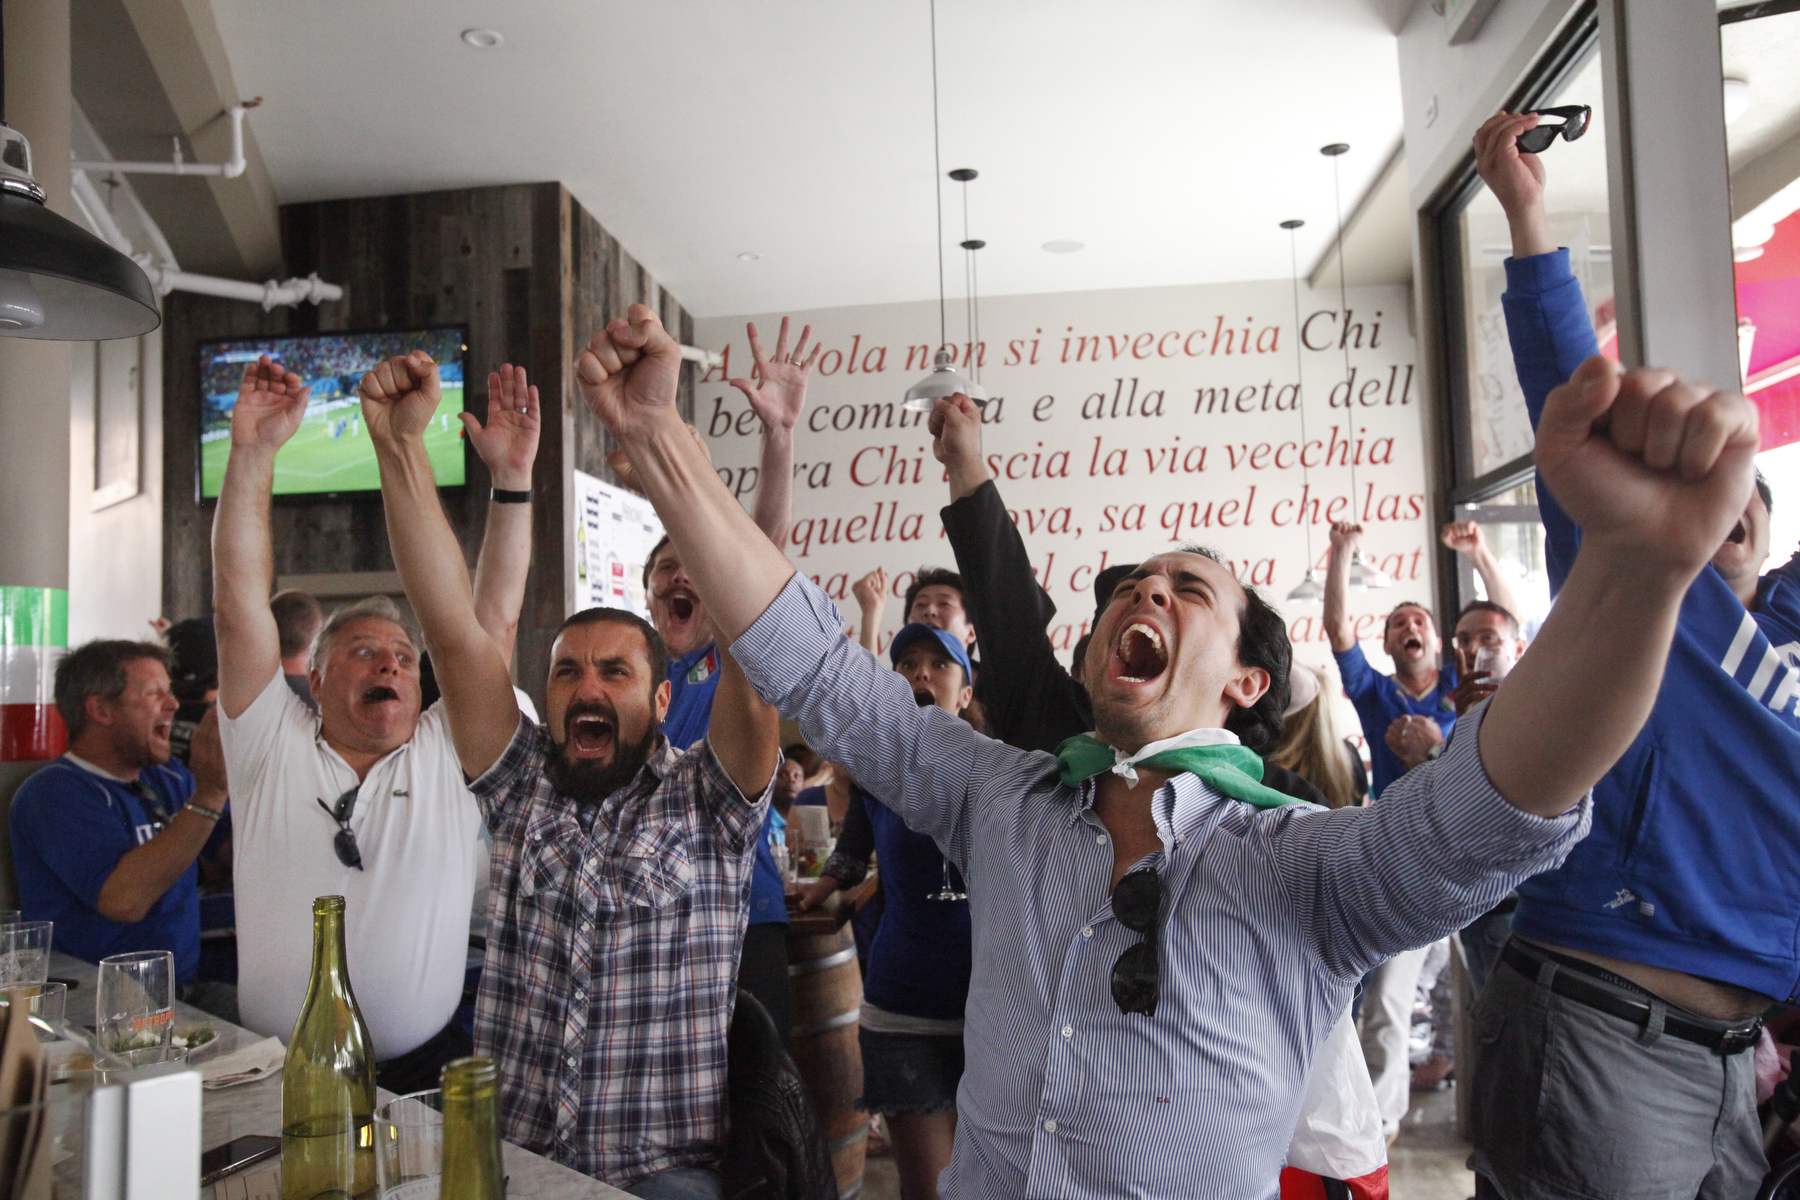 Italy fans Emanuele Gastel, 25, right, cheers with Savino Cancellara, 30, center, and Vince Lamanna, far left, after Italy scored the first goal during the England vs. Italy World Cup match June 14, 2014 at Il Casaro in San Francisco, Calif.